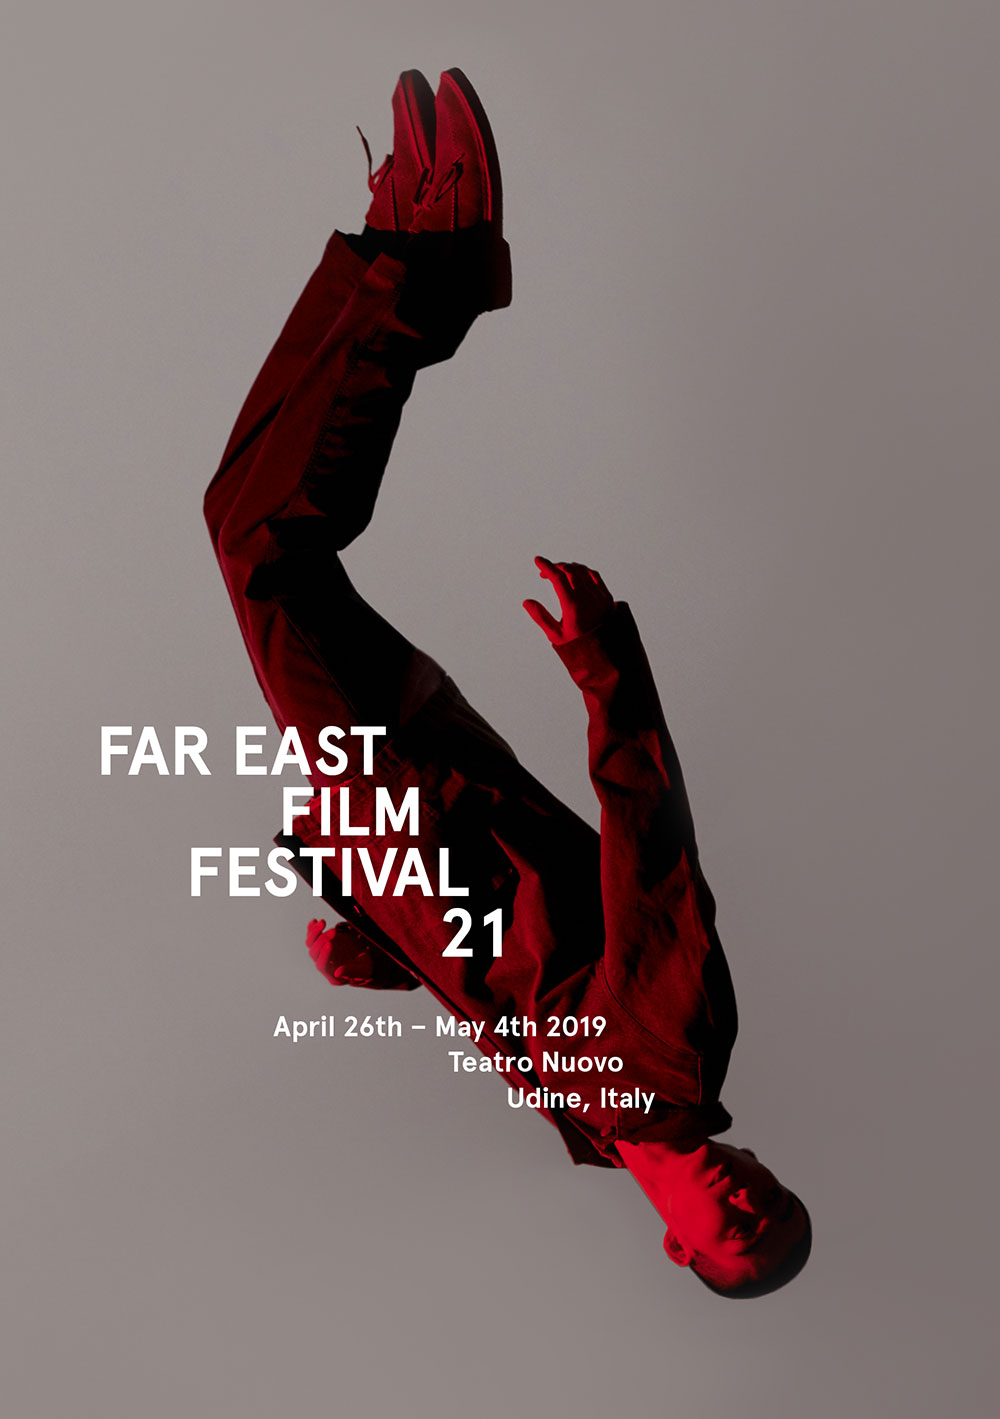 Far East Film Festival 2019